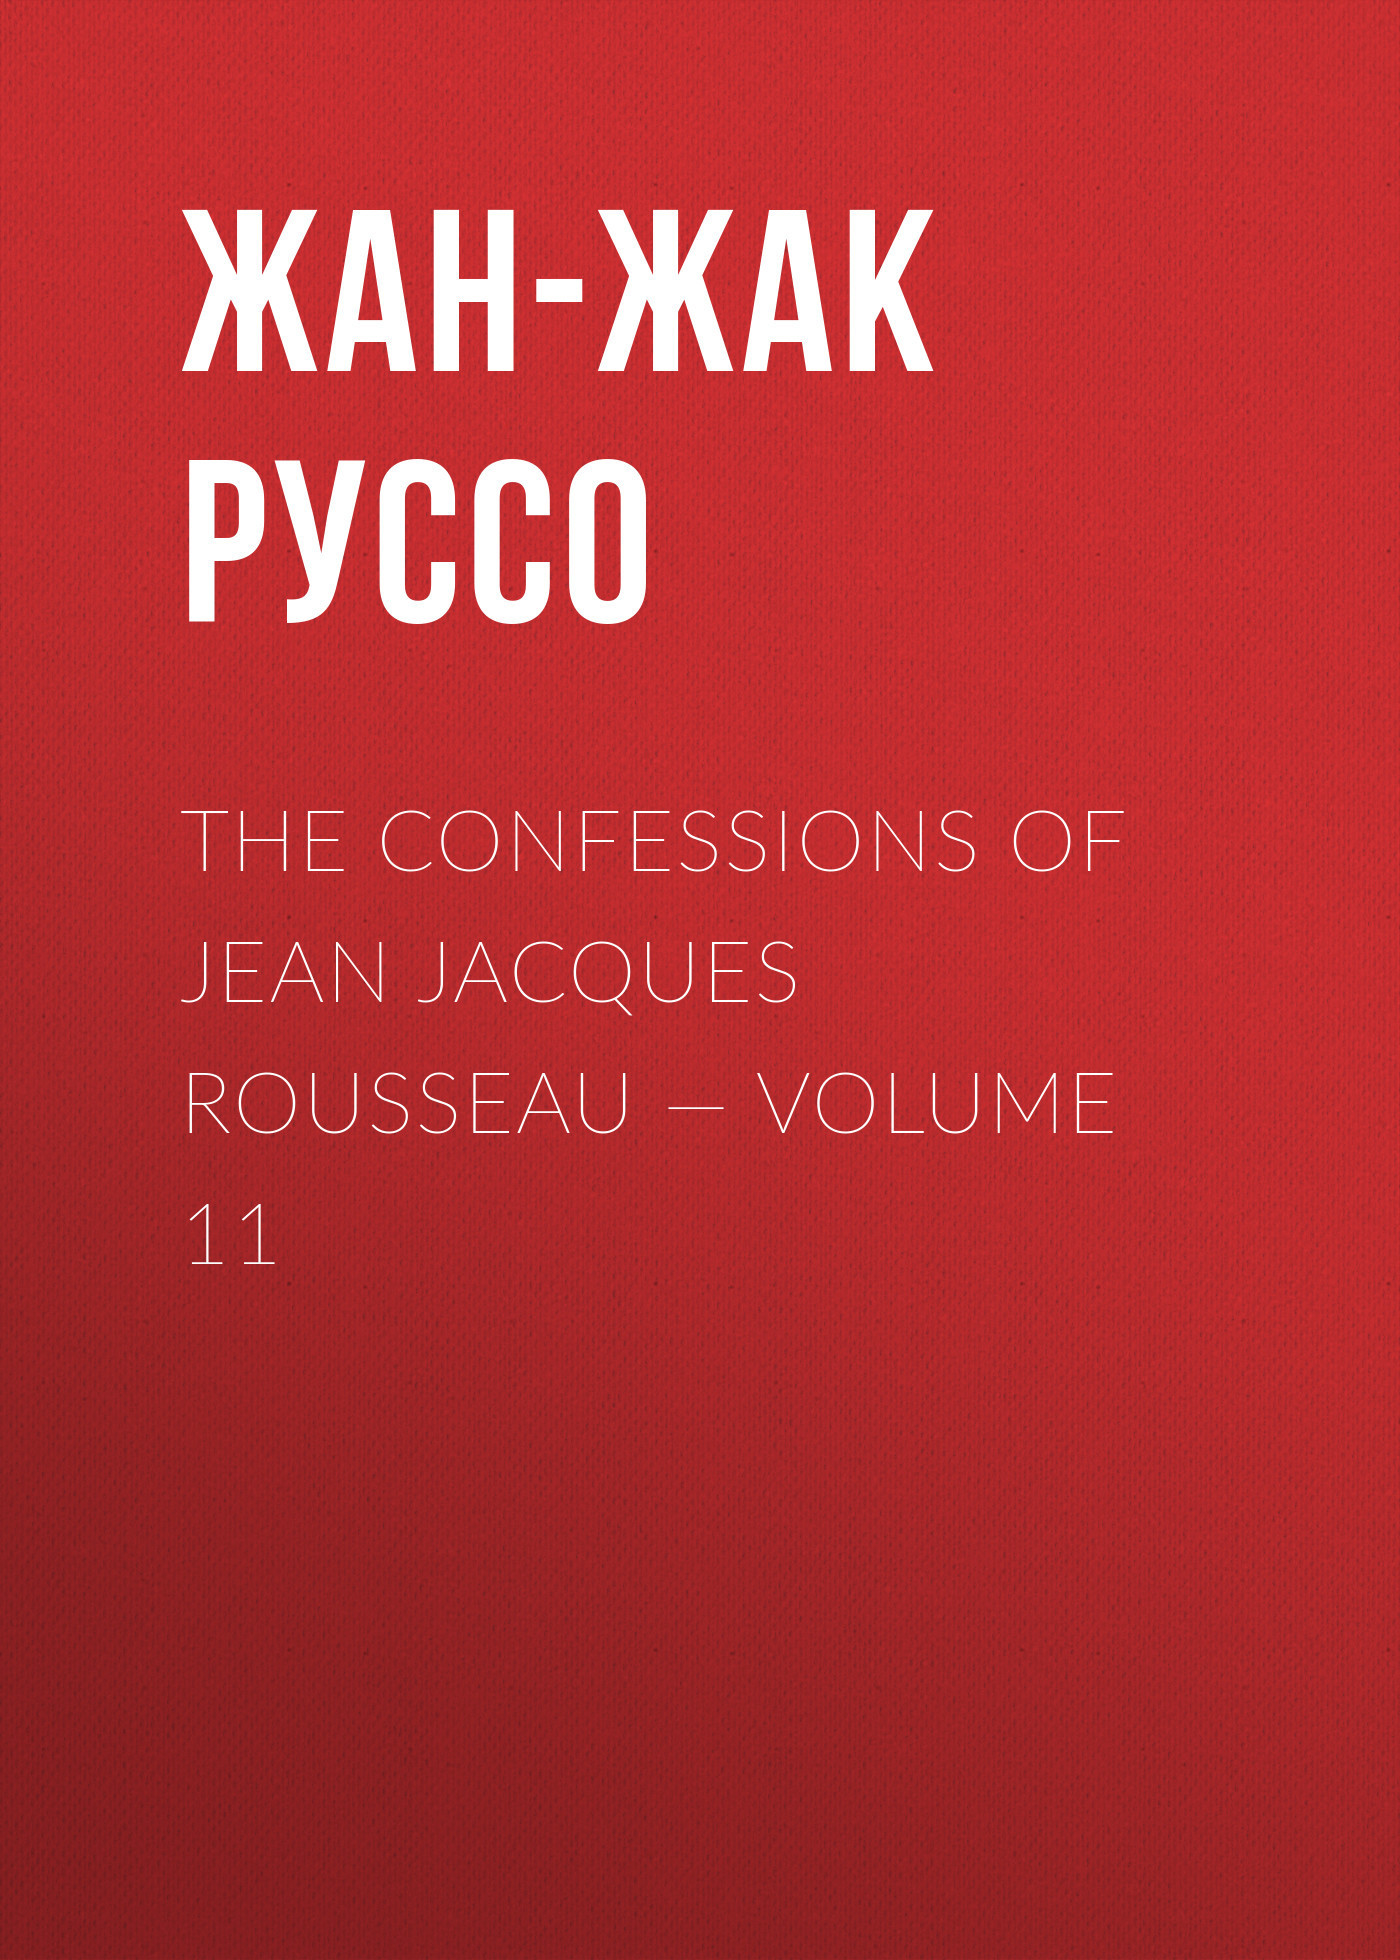 Жан-Жак Руссо The Confessions of Jean Jacques Rousseau — Volume 11 jean jacques rousseau mélanges t 7